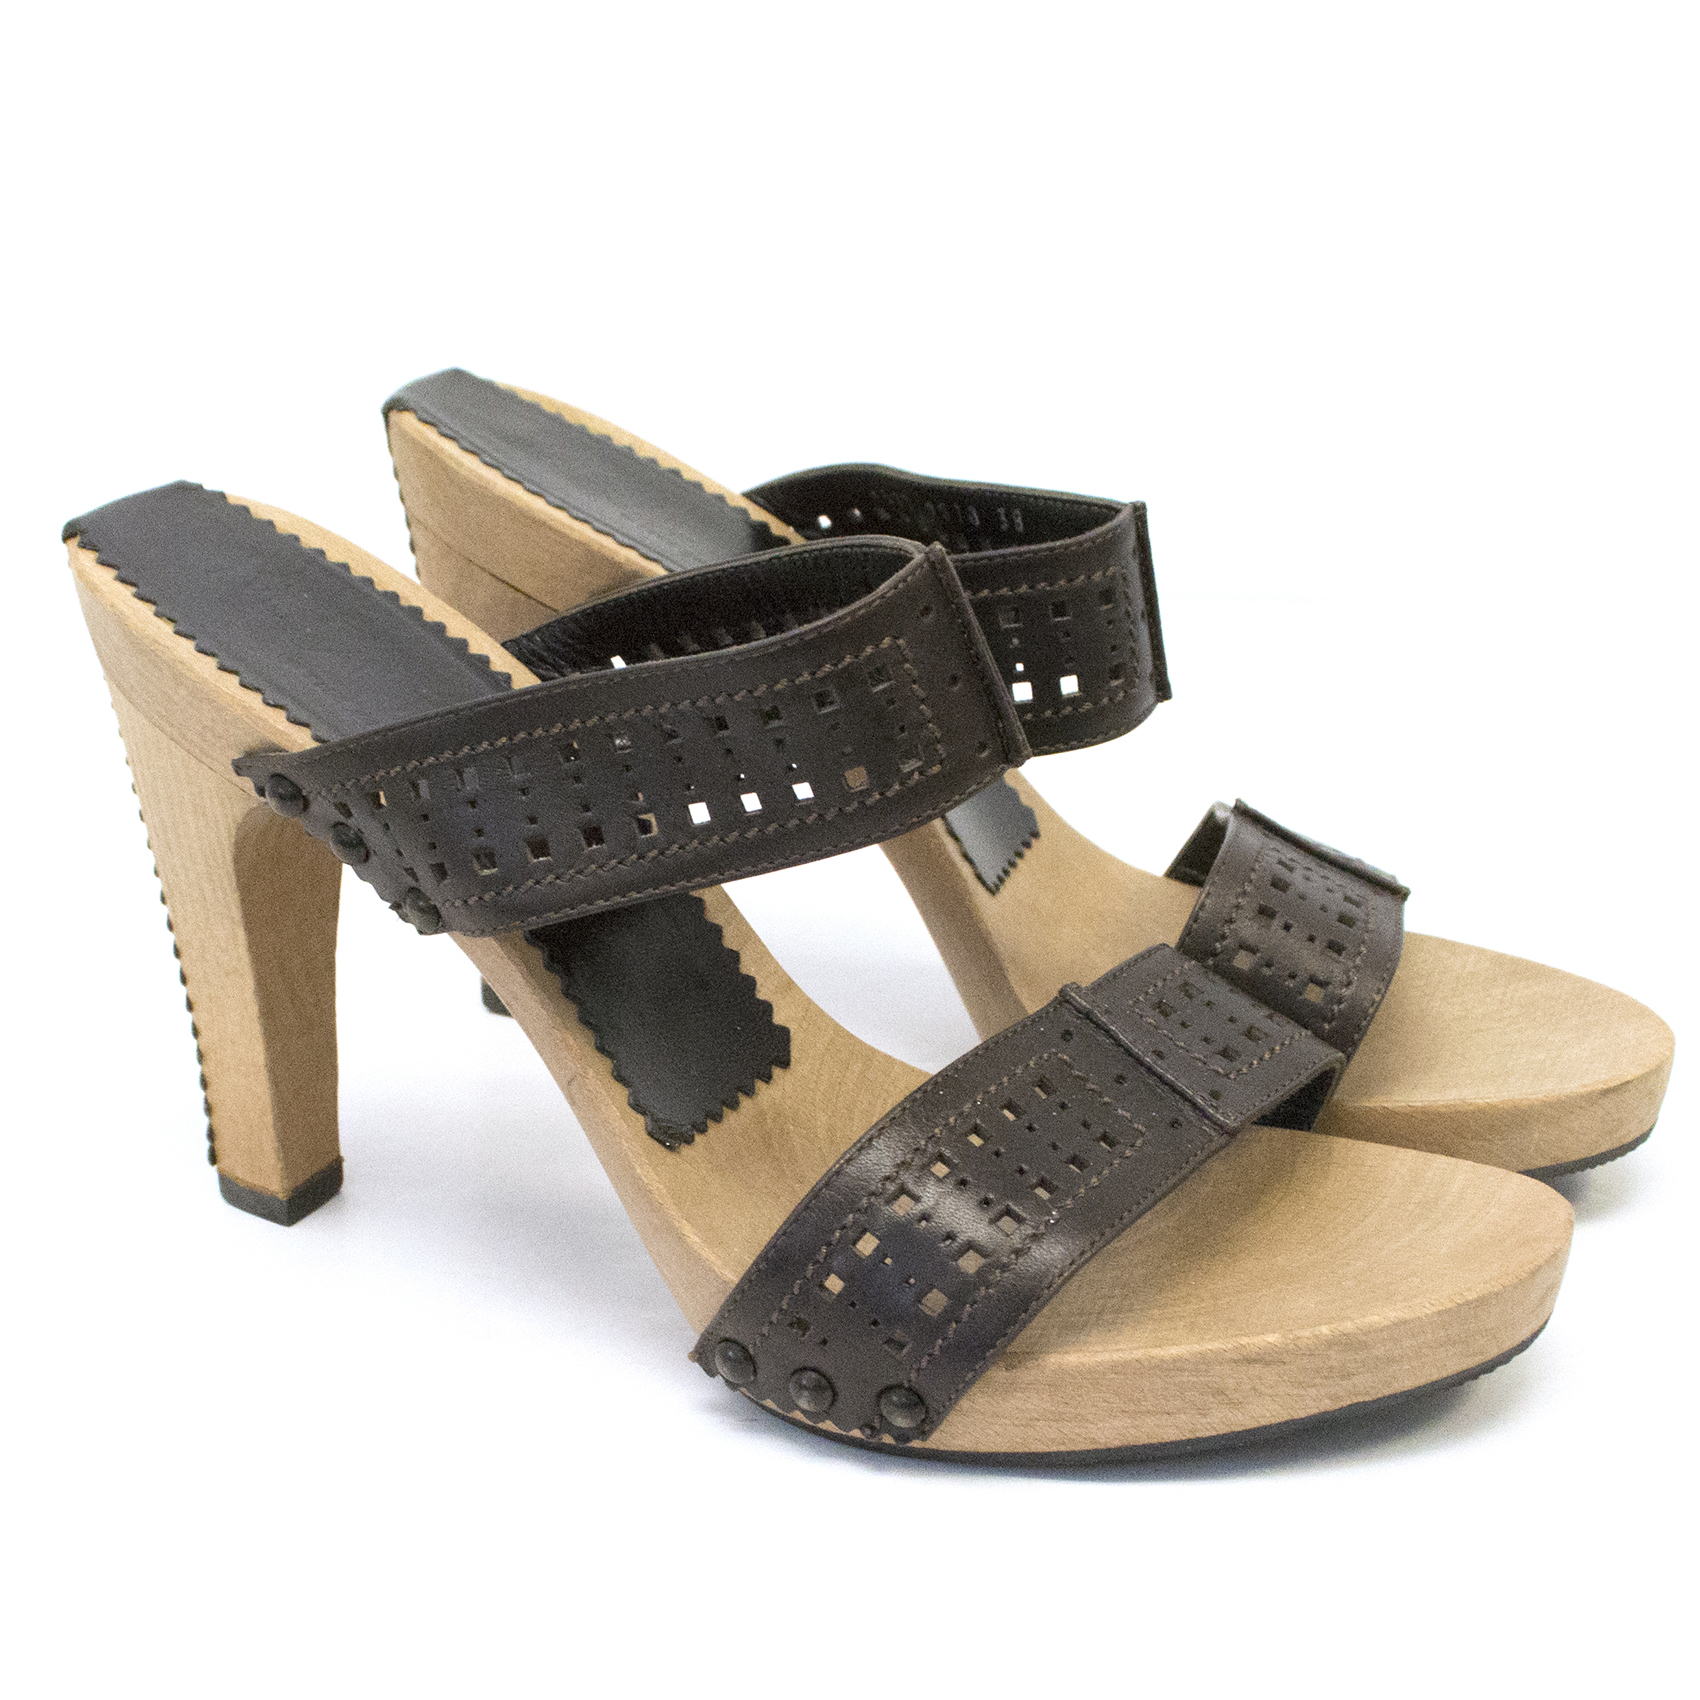 Yves Saint Laurent Brown Leather & Wood Heel Sandals